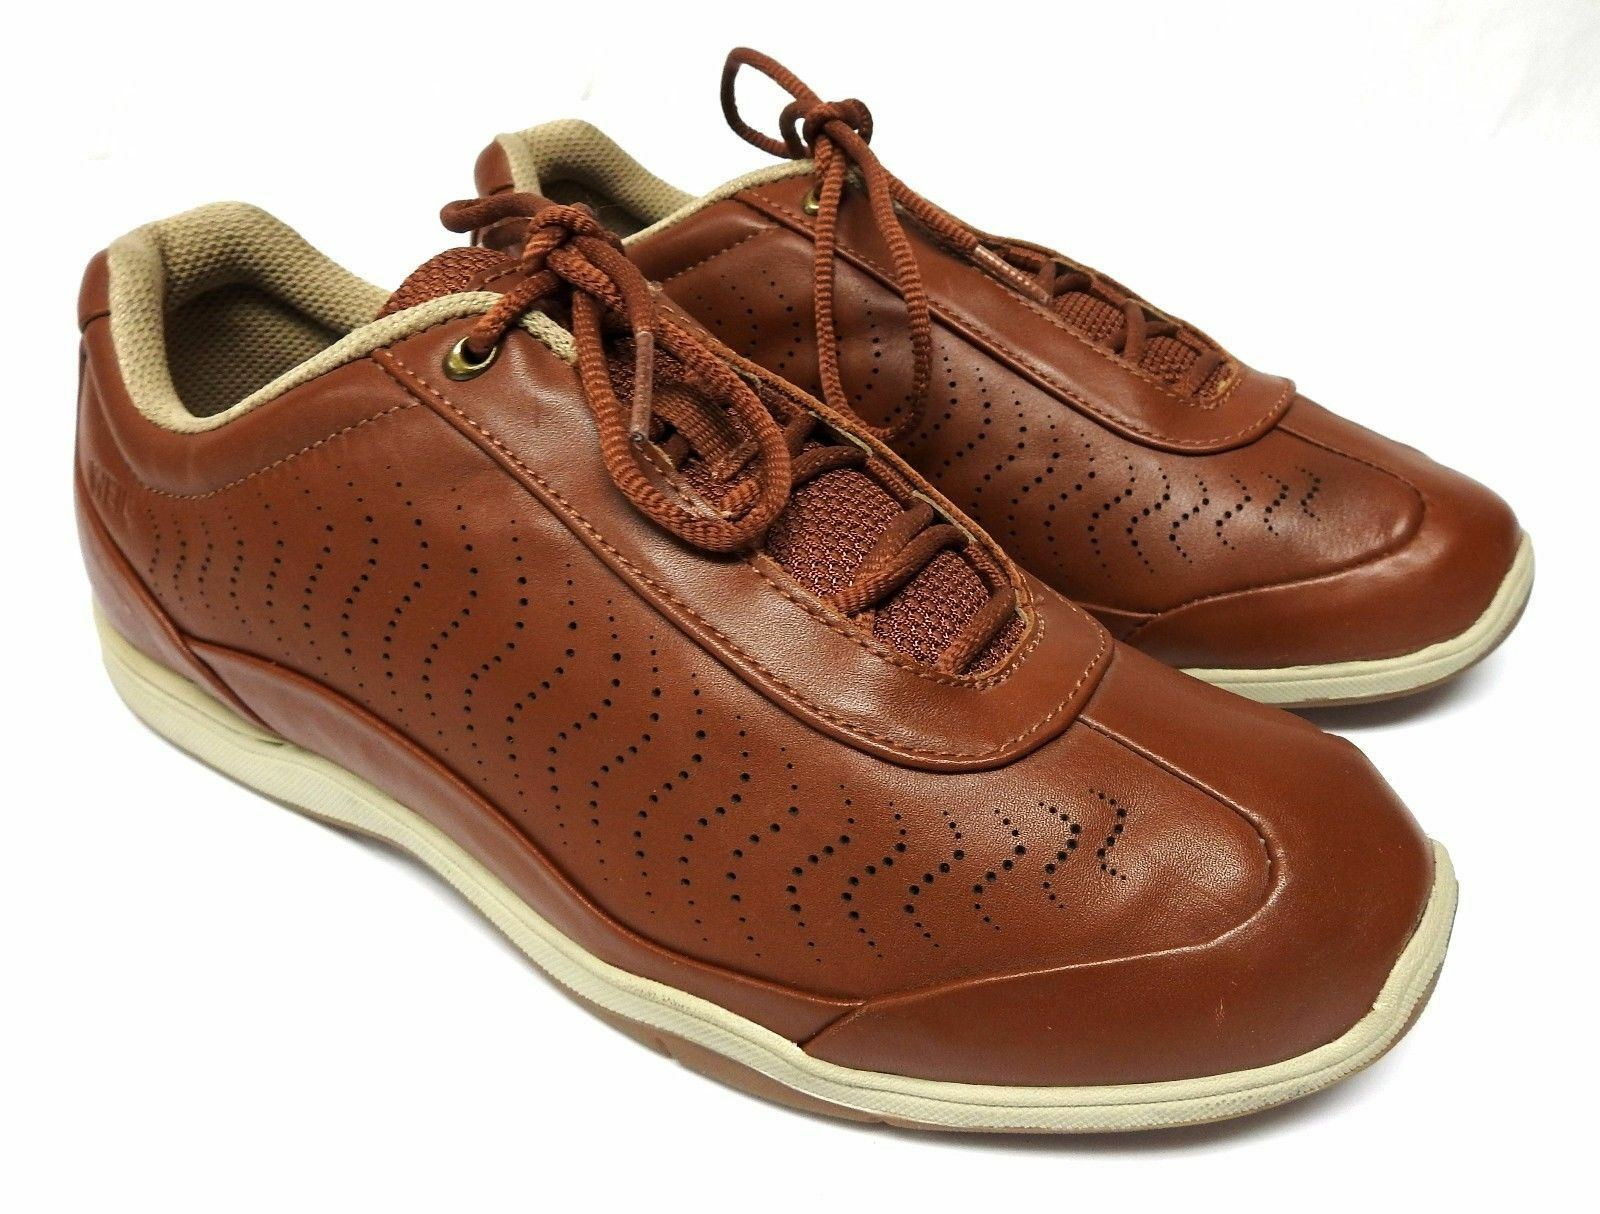 Dr Andrew Weil Orthaheel women's size 10 brown leather lace up walking shoes